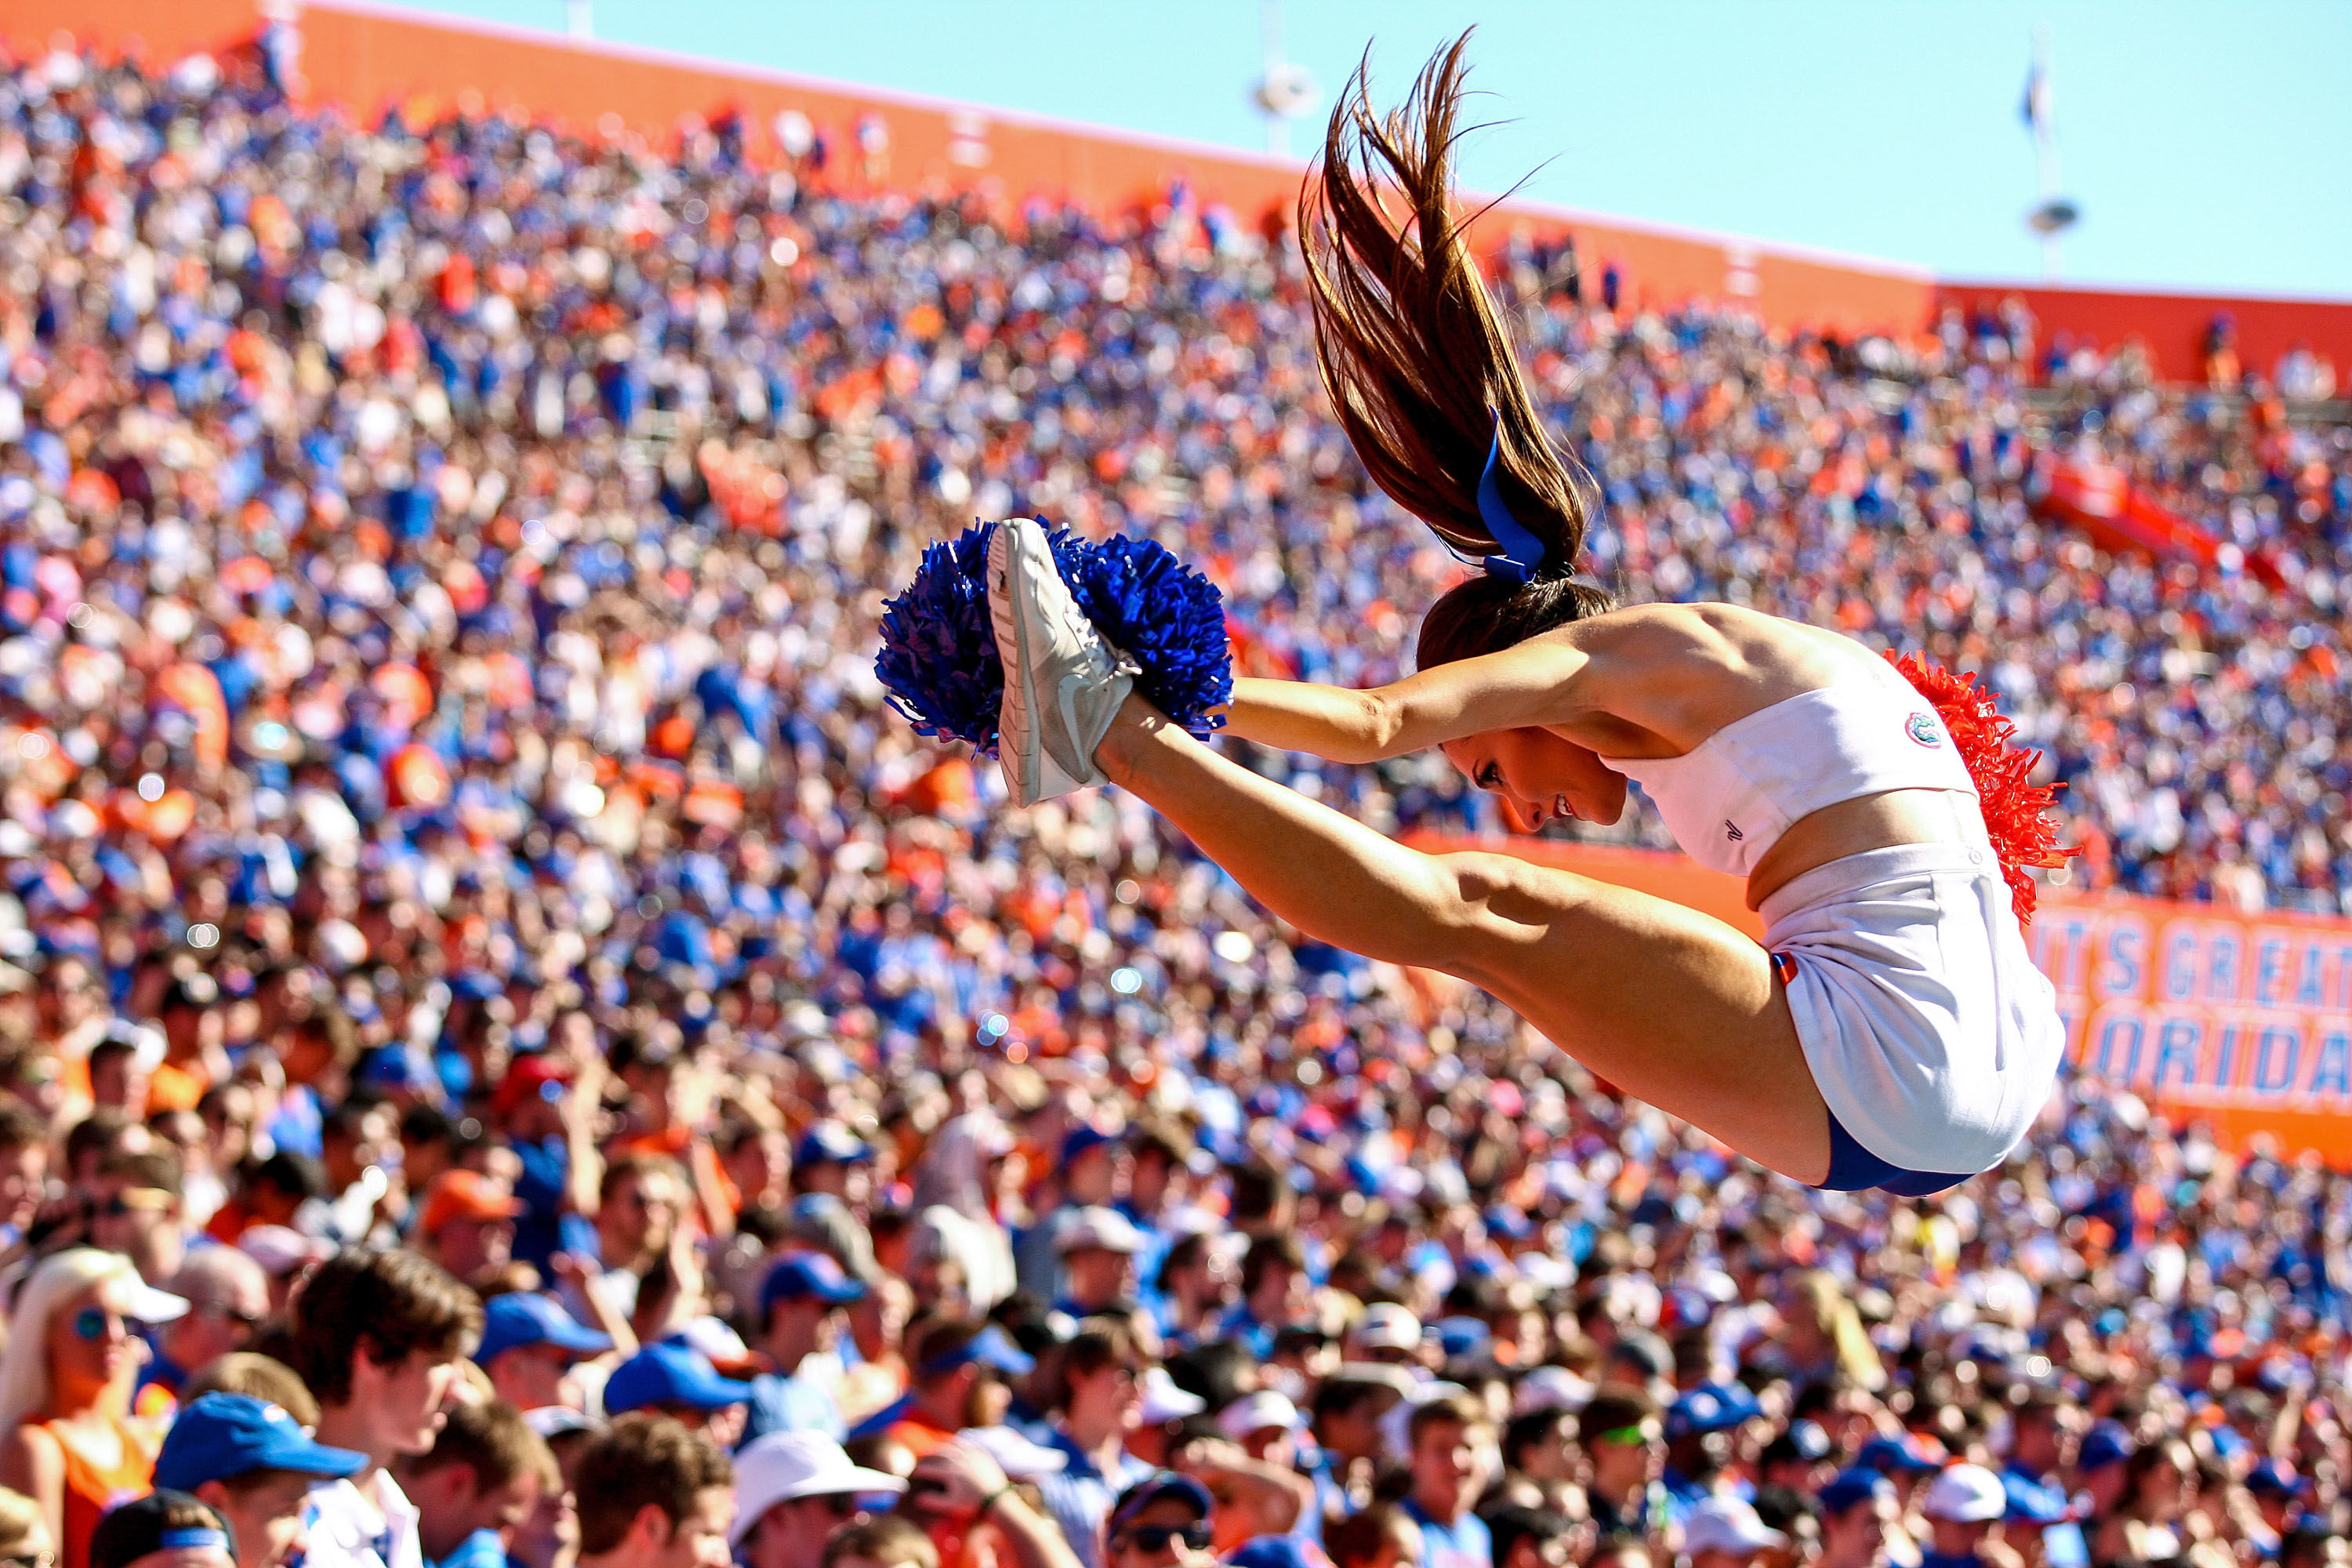 Cheerleading Just Took Another Step Towards Becoming An Olympic Sport